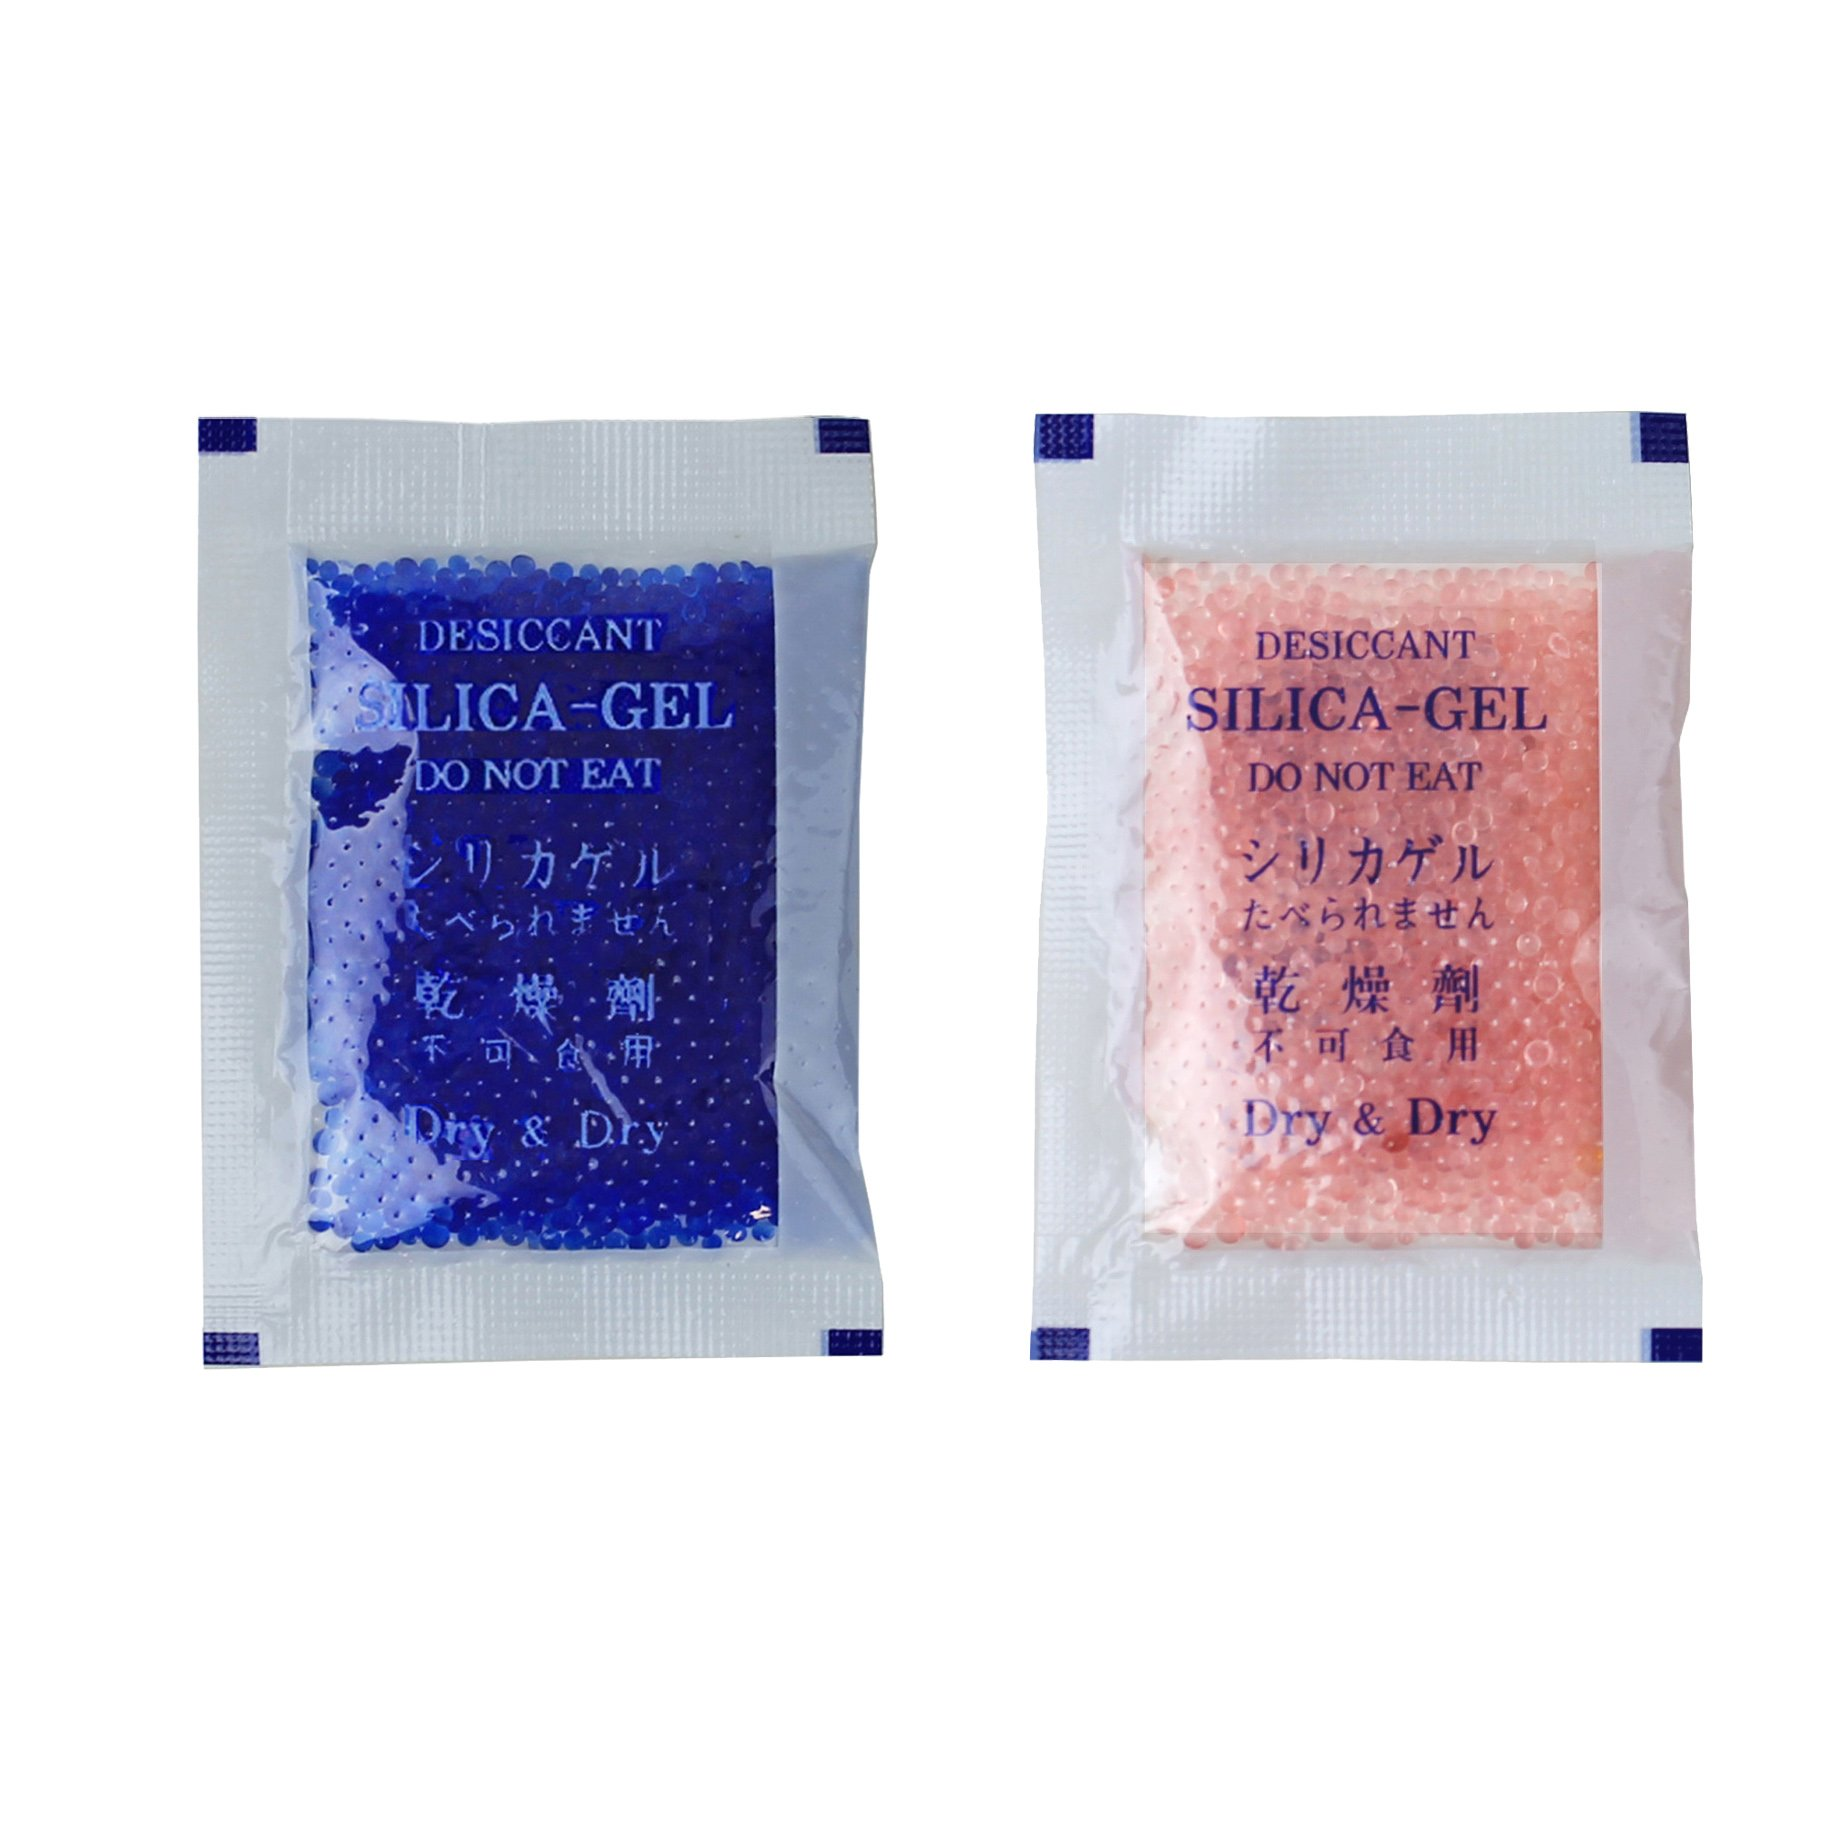 Dry & Dry 10 Gram [100 Packets] Premium Blue Indicating(Blue to Pink) Silica Gel Packets Desiccant Dehumidifier - Rechargeable Silica Packets for Moisture